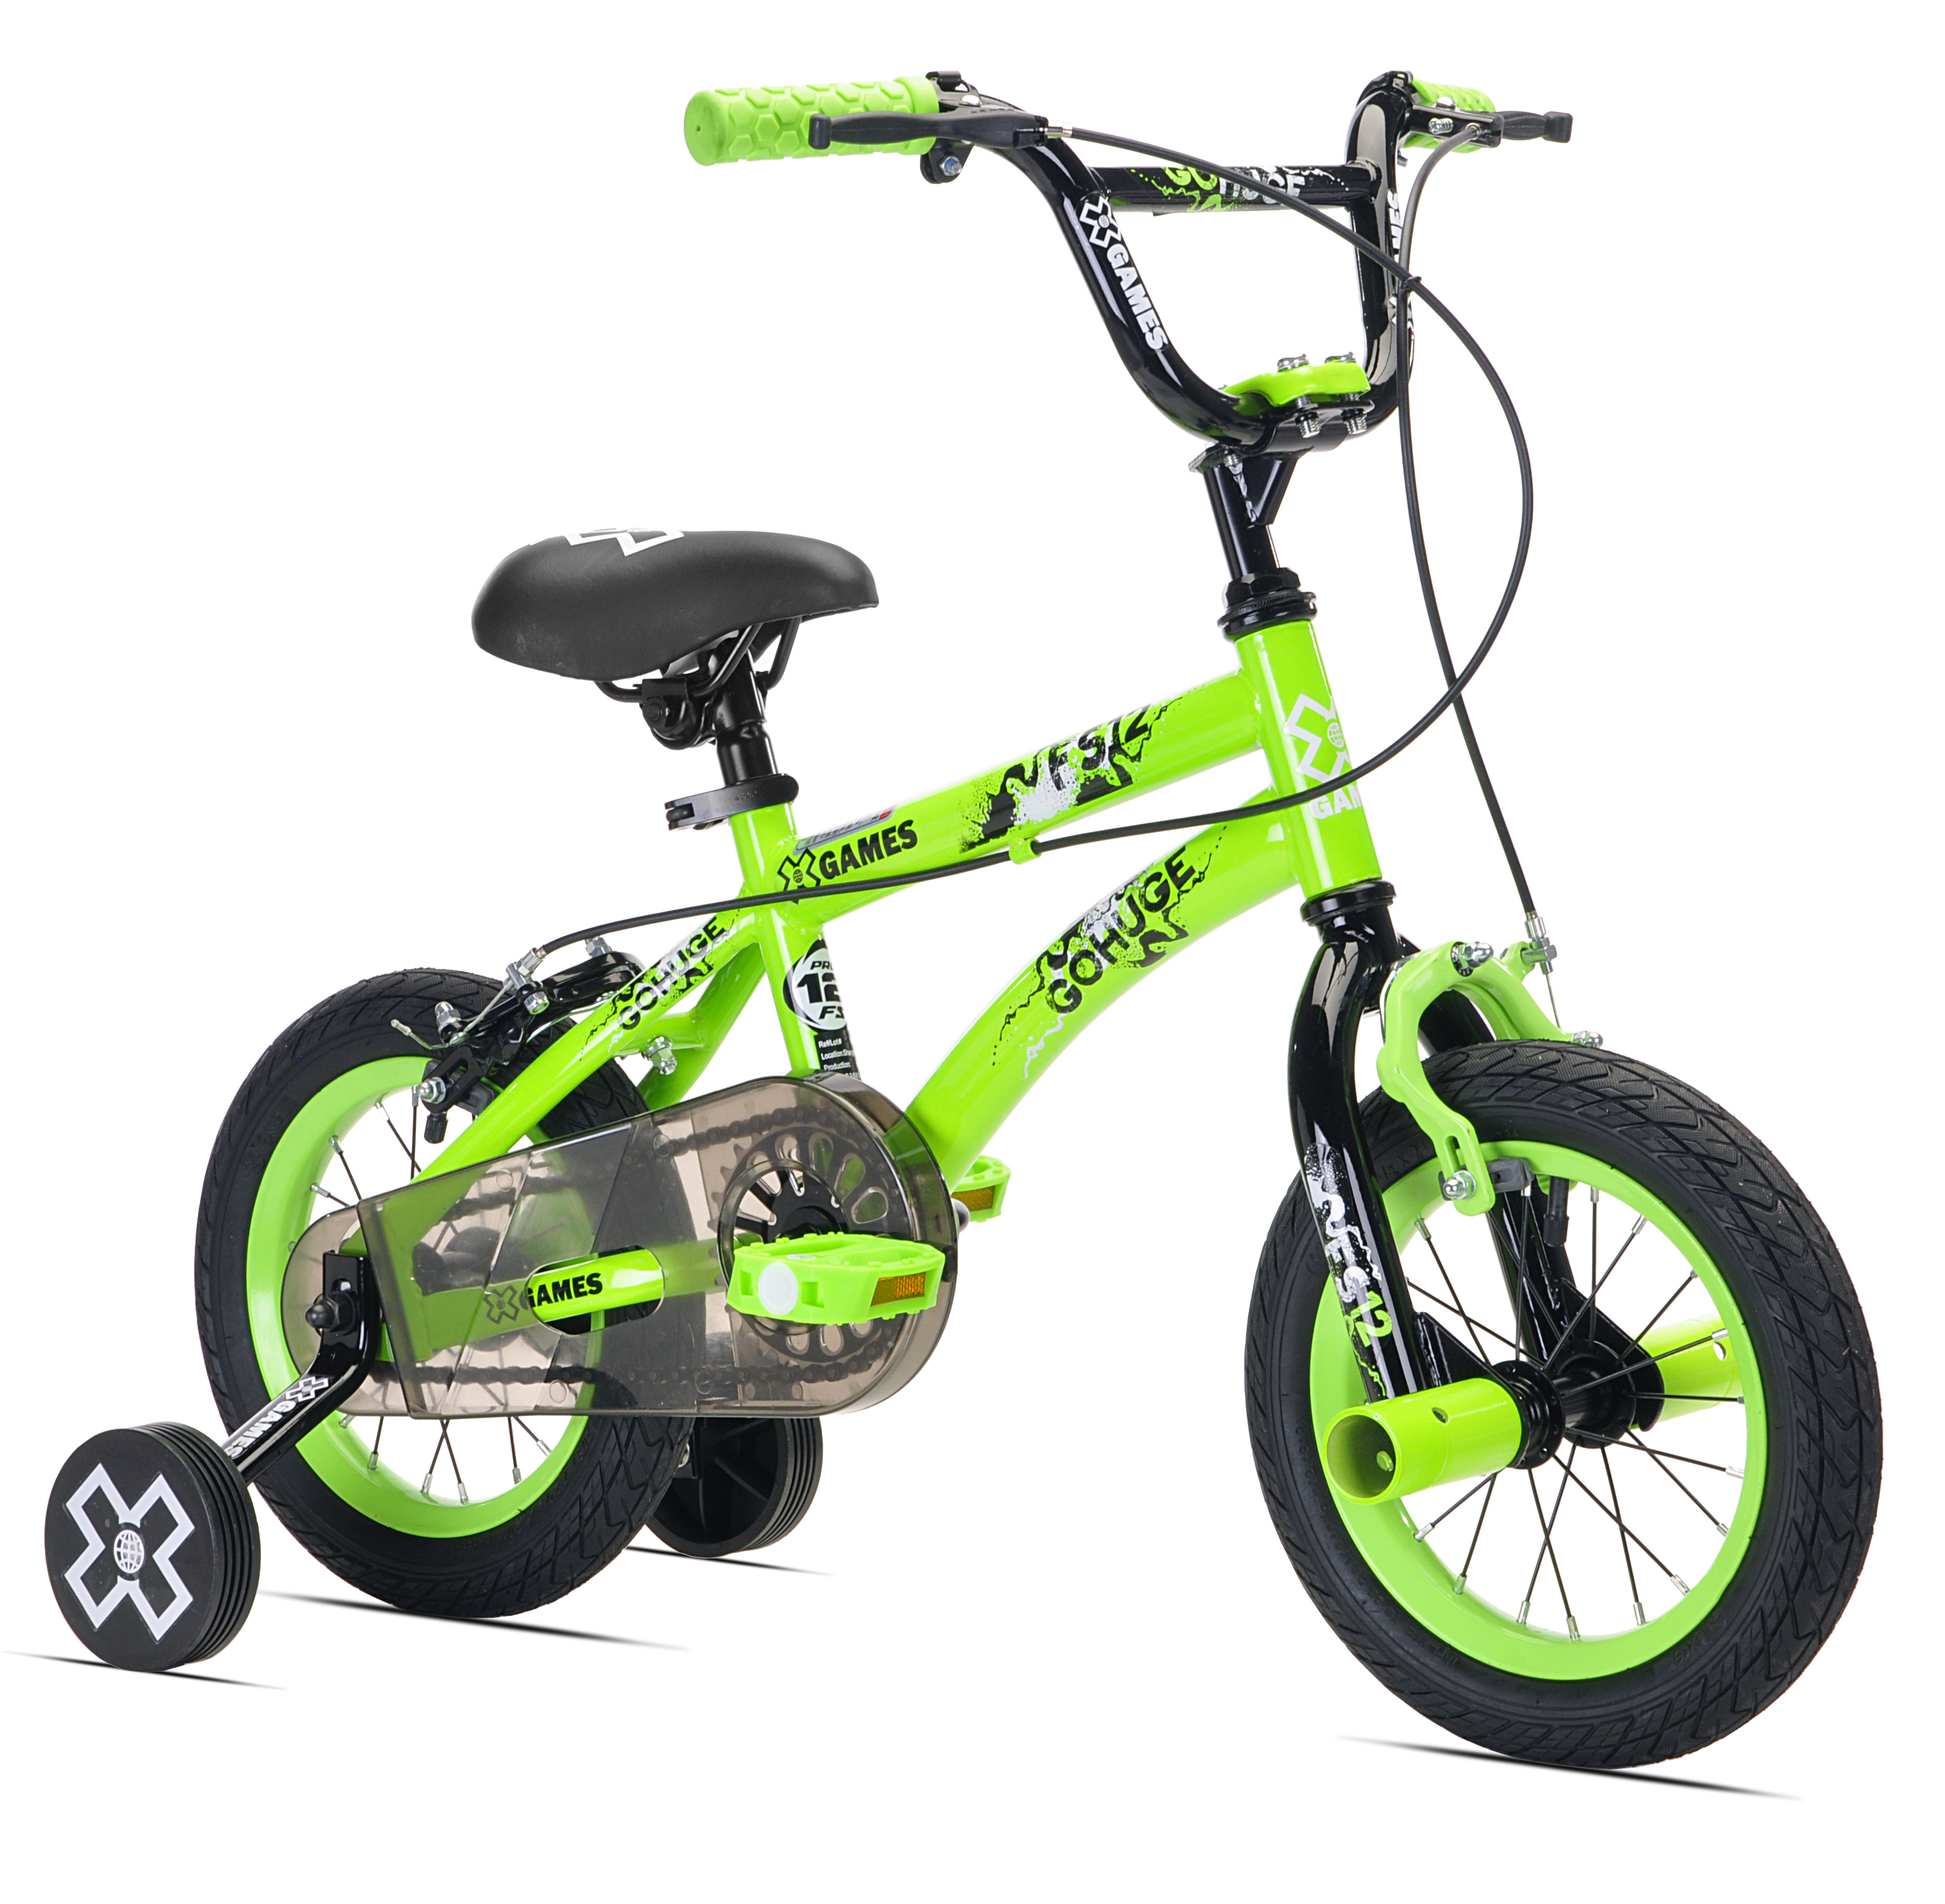 "X-Games 12"" Boys', BMX Bicycle, Green, For Ages 2-5"